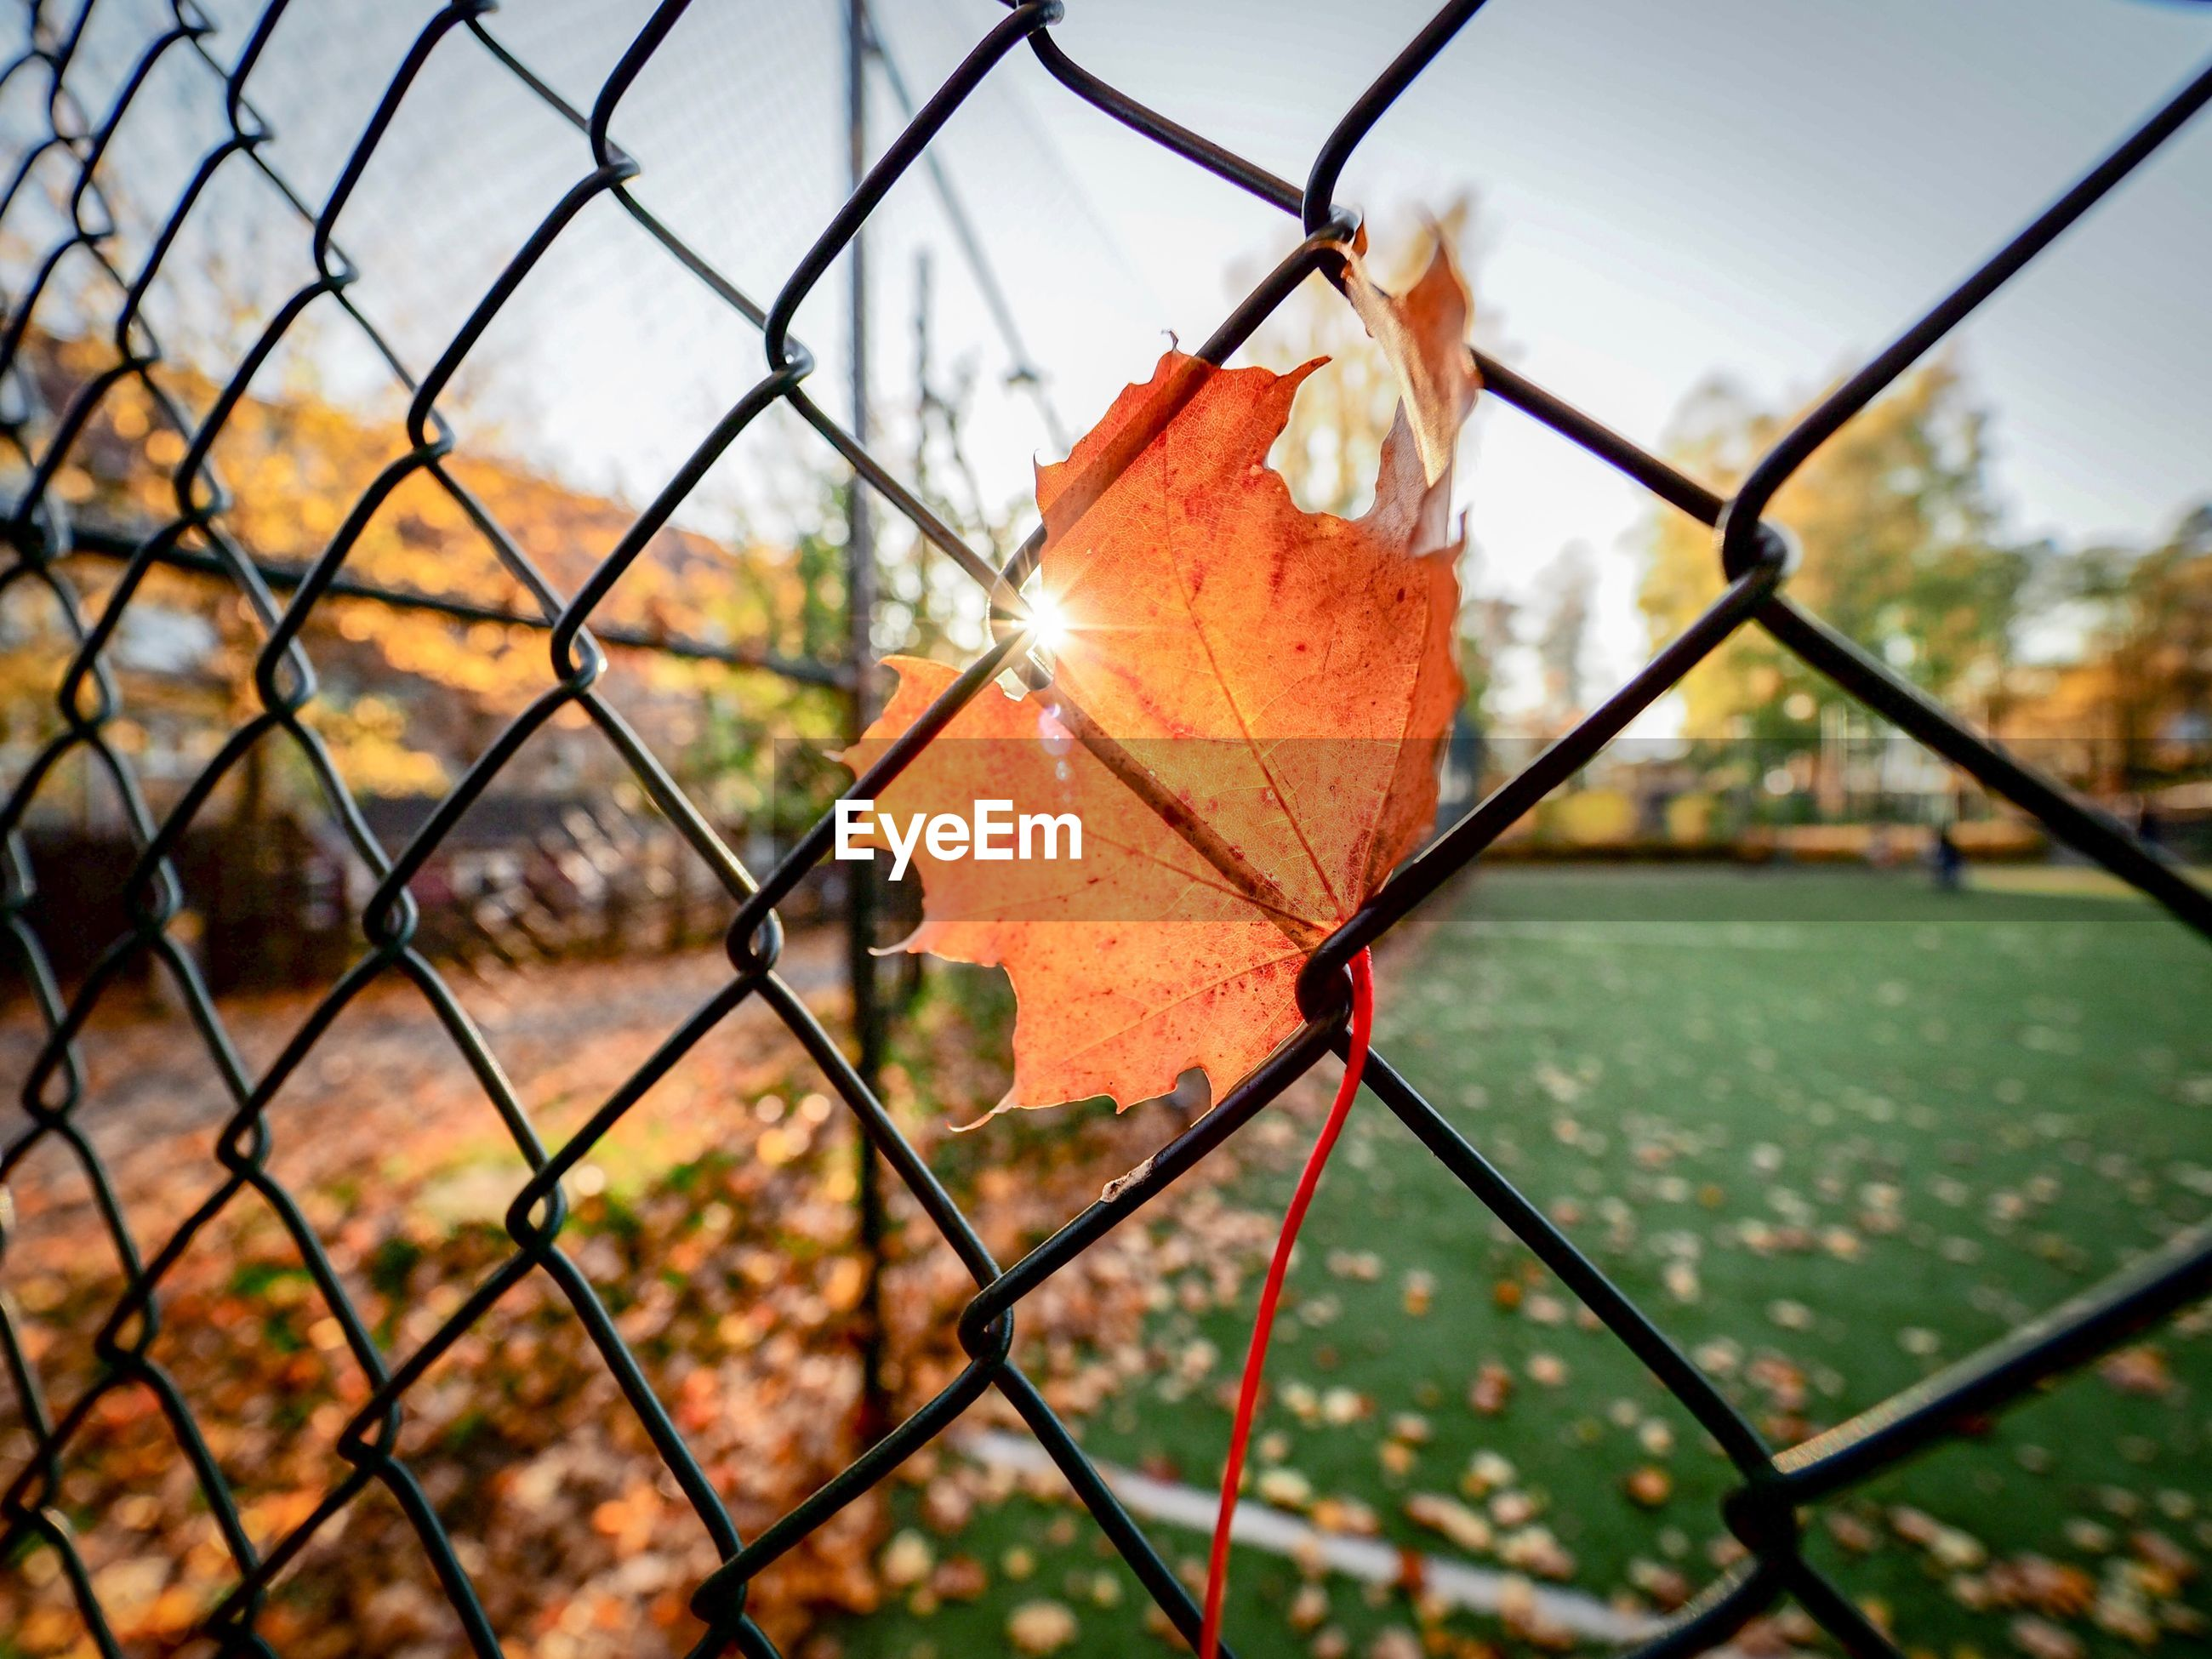 Close-up of maple leaf on chainlink fence